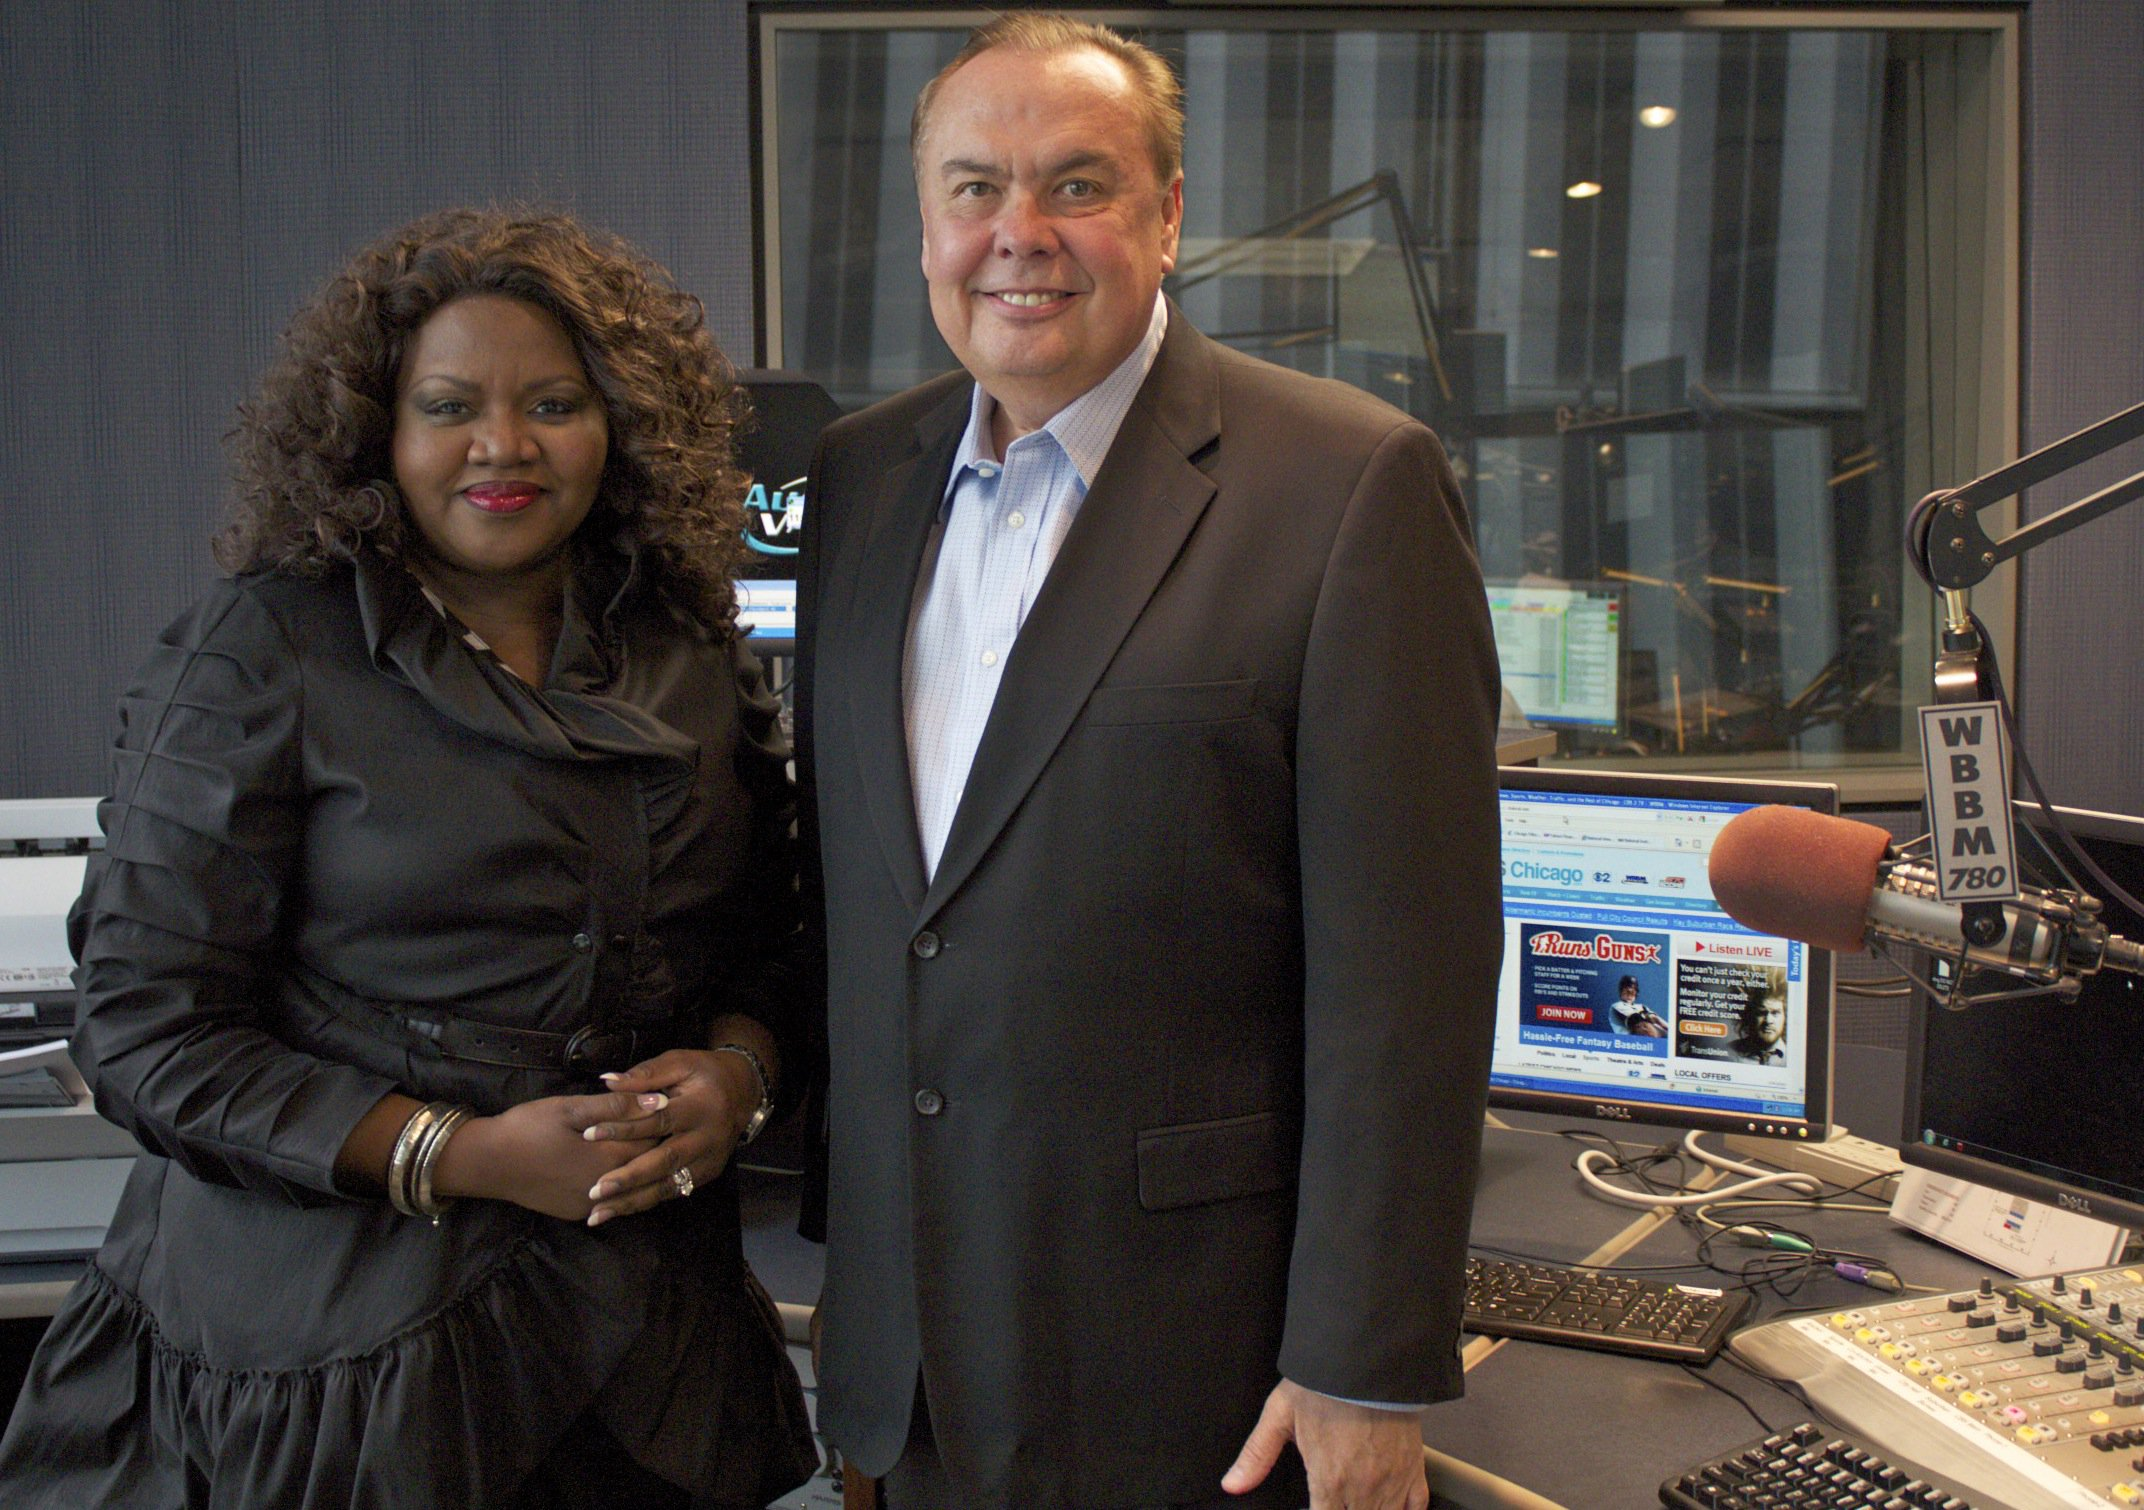 1. Felicia Middlebrooks and Pat Cassidy WBBM AM 780/WCFS FM 105.9 (8.8 share)